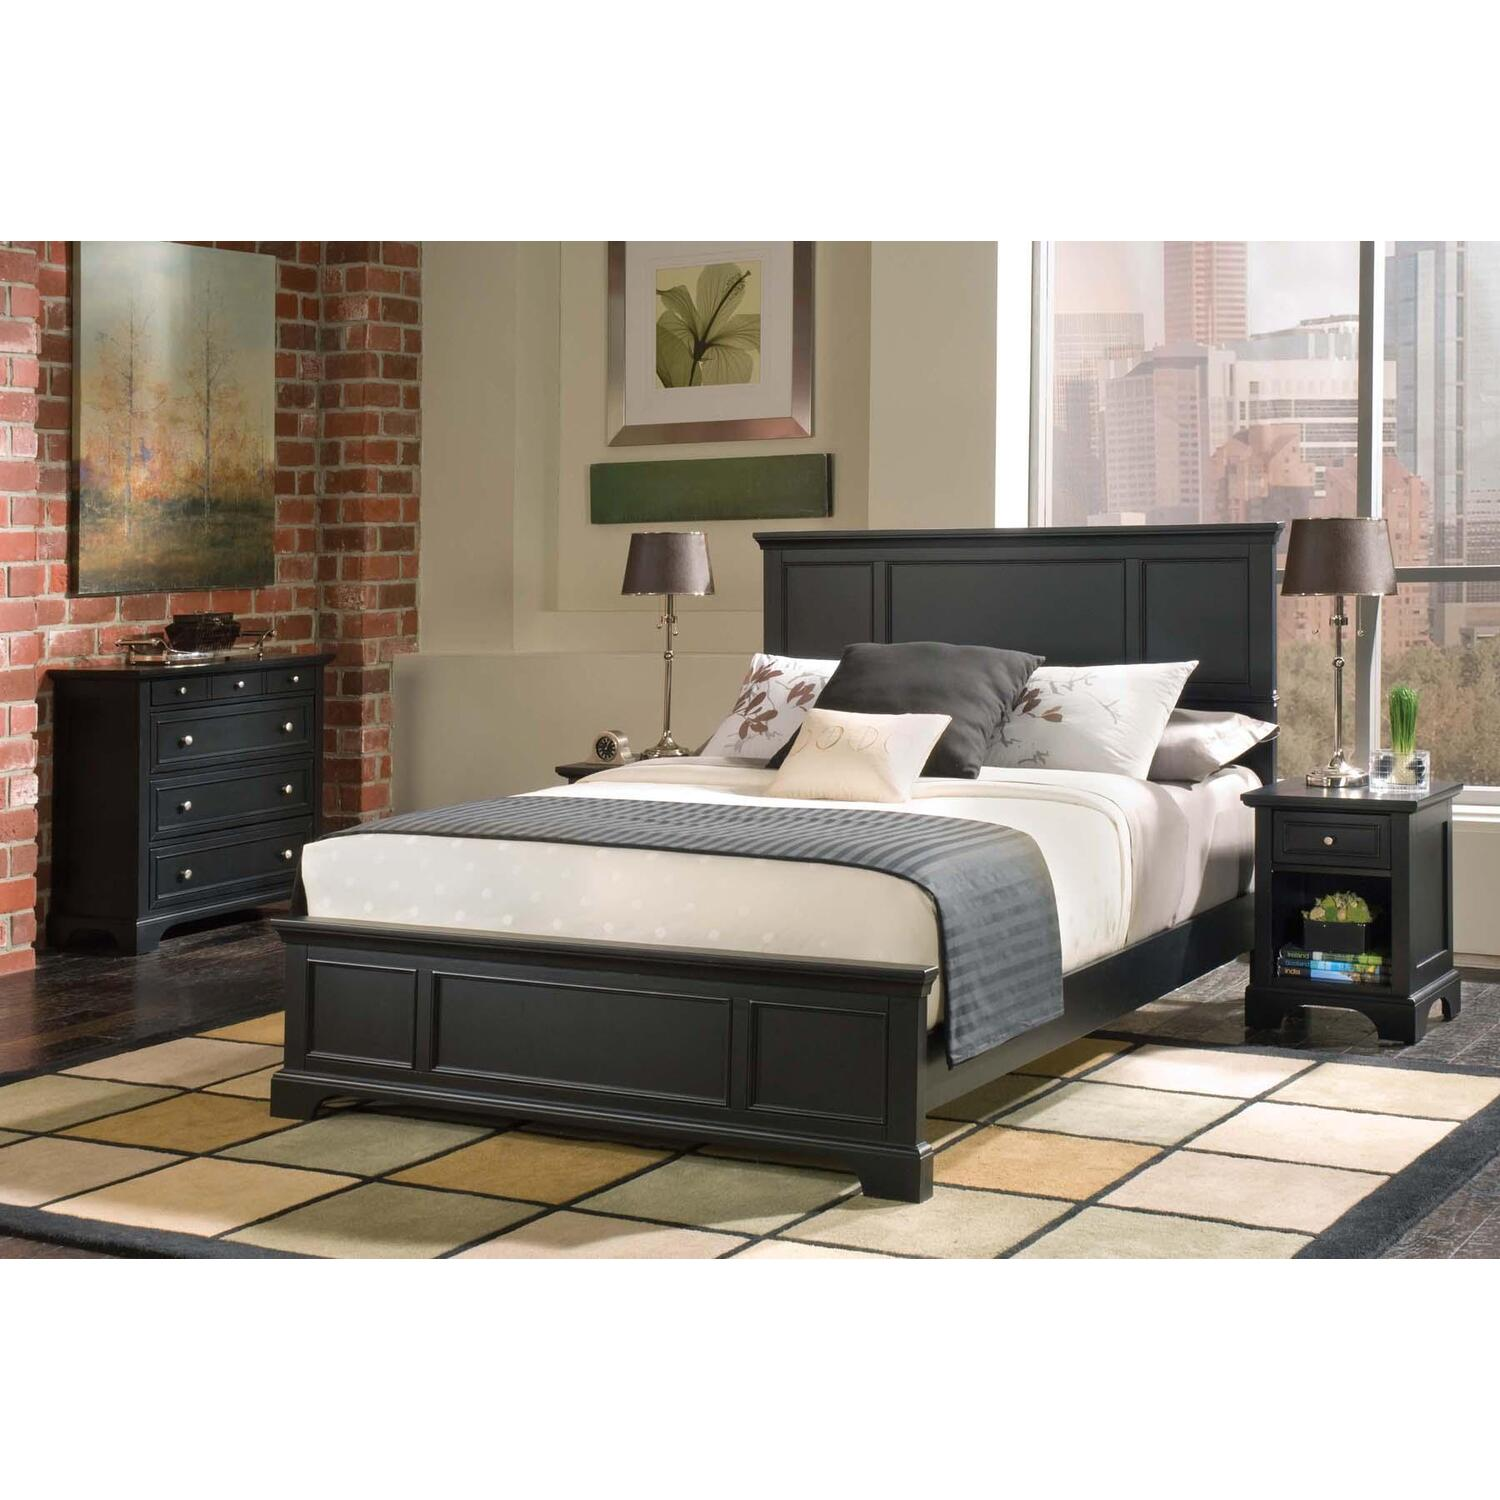 Home styles bedford queen bed night stand and chest by for Queen bed frame and dresser set